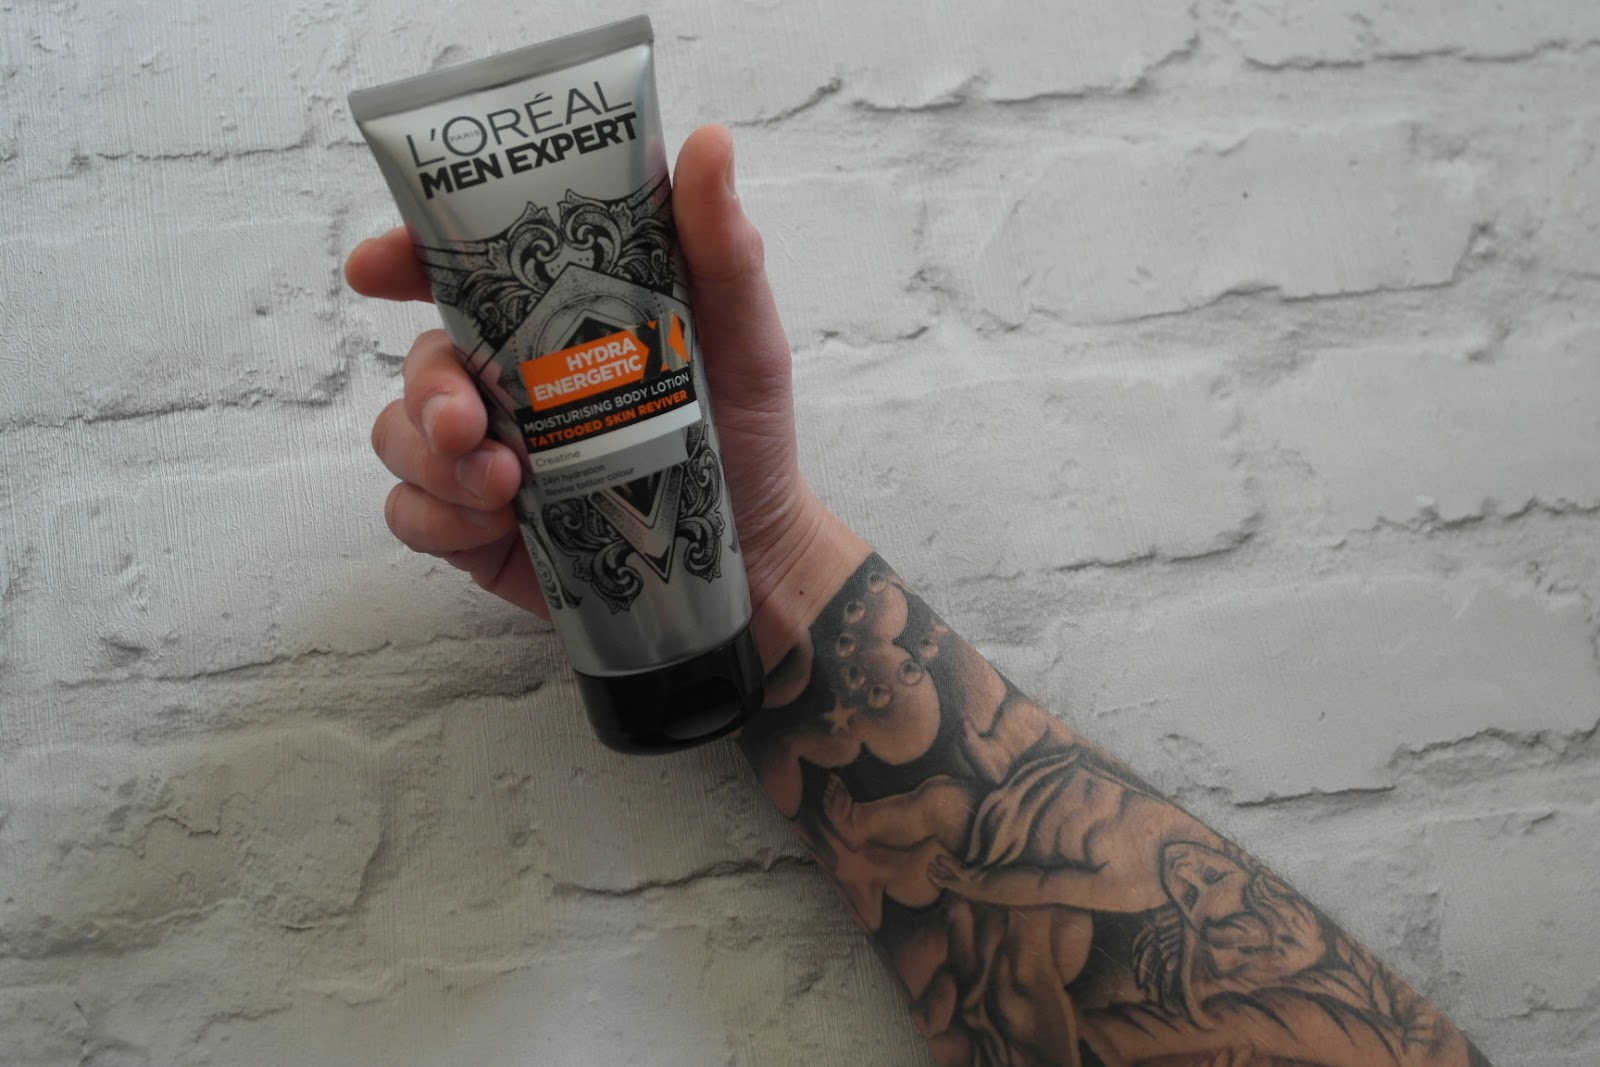 L'oreal Men Expert Hydra Energetic Tattooed Skin Reviver Lotion review